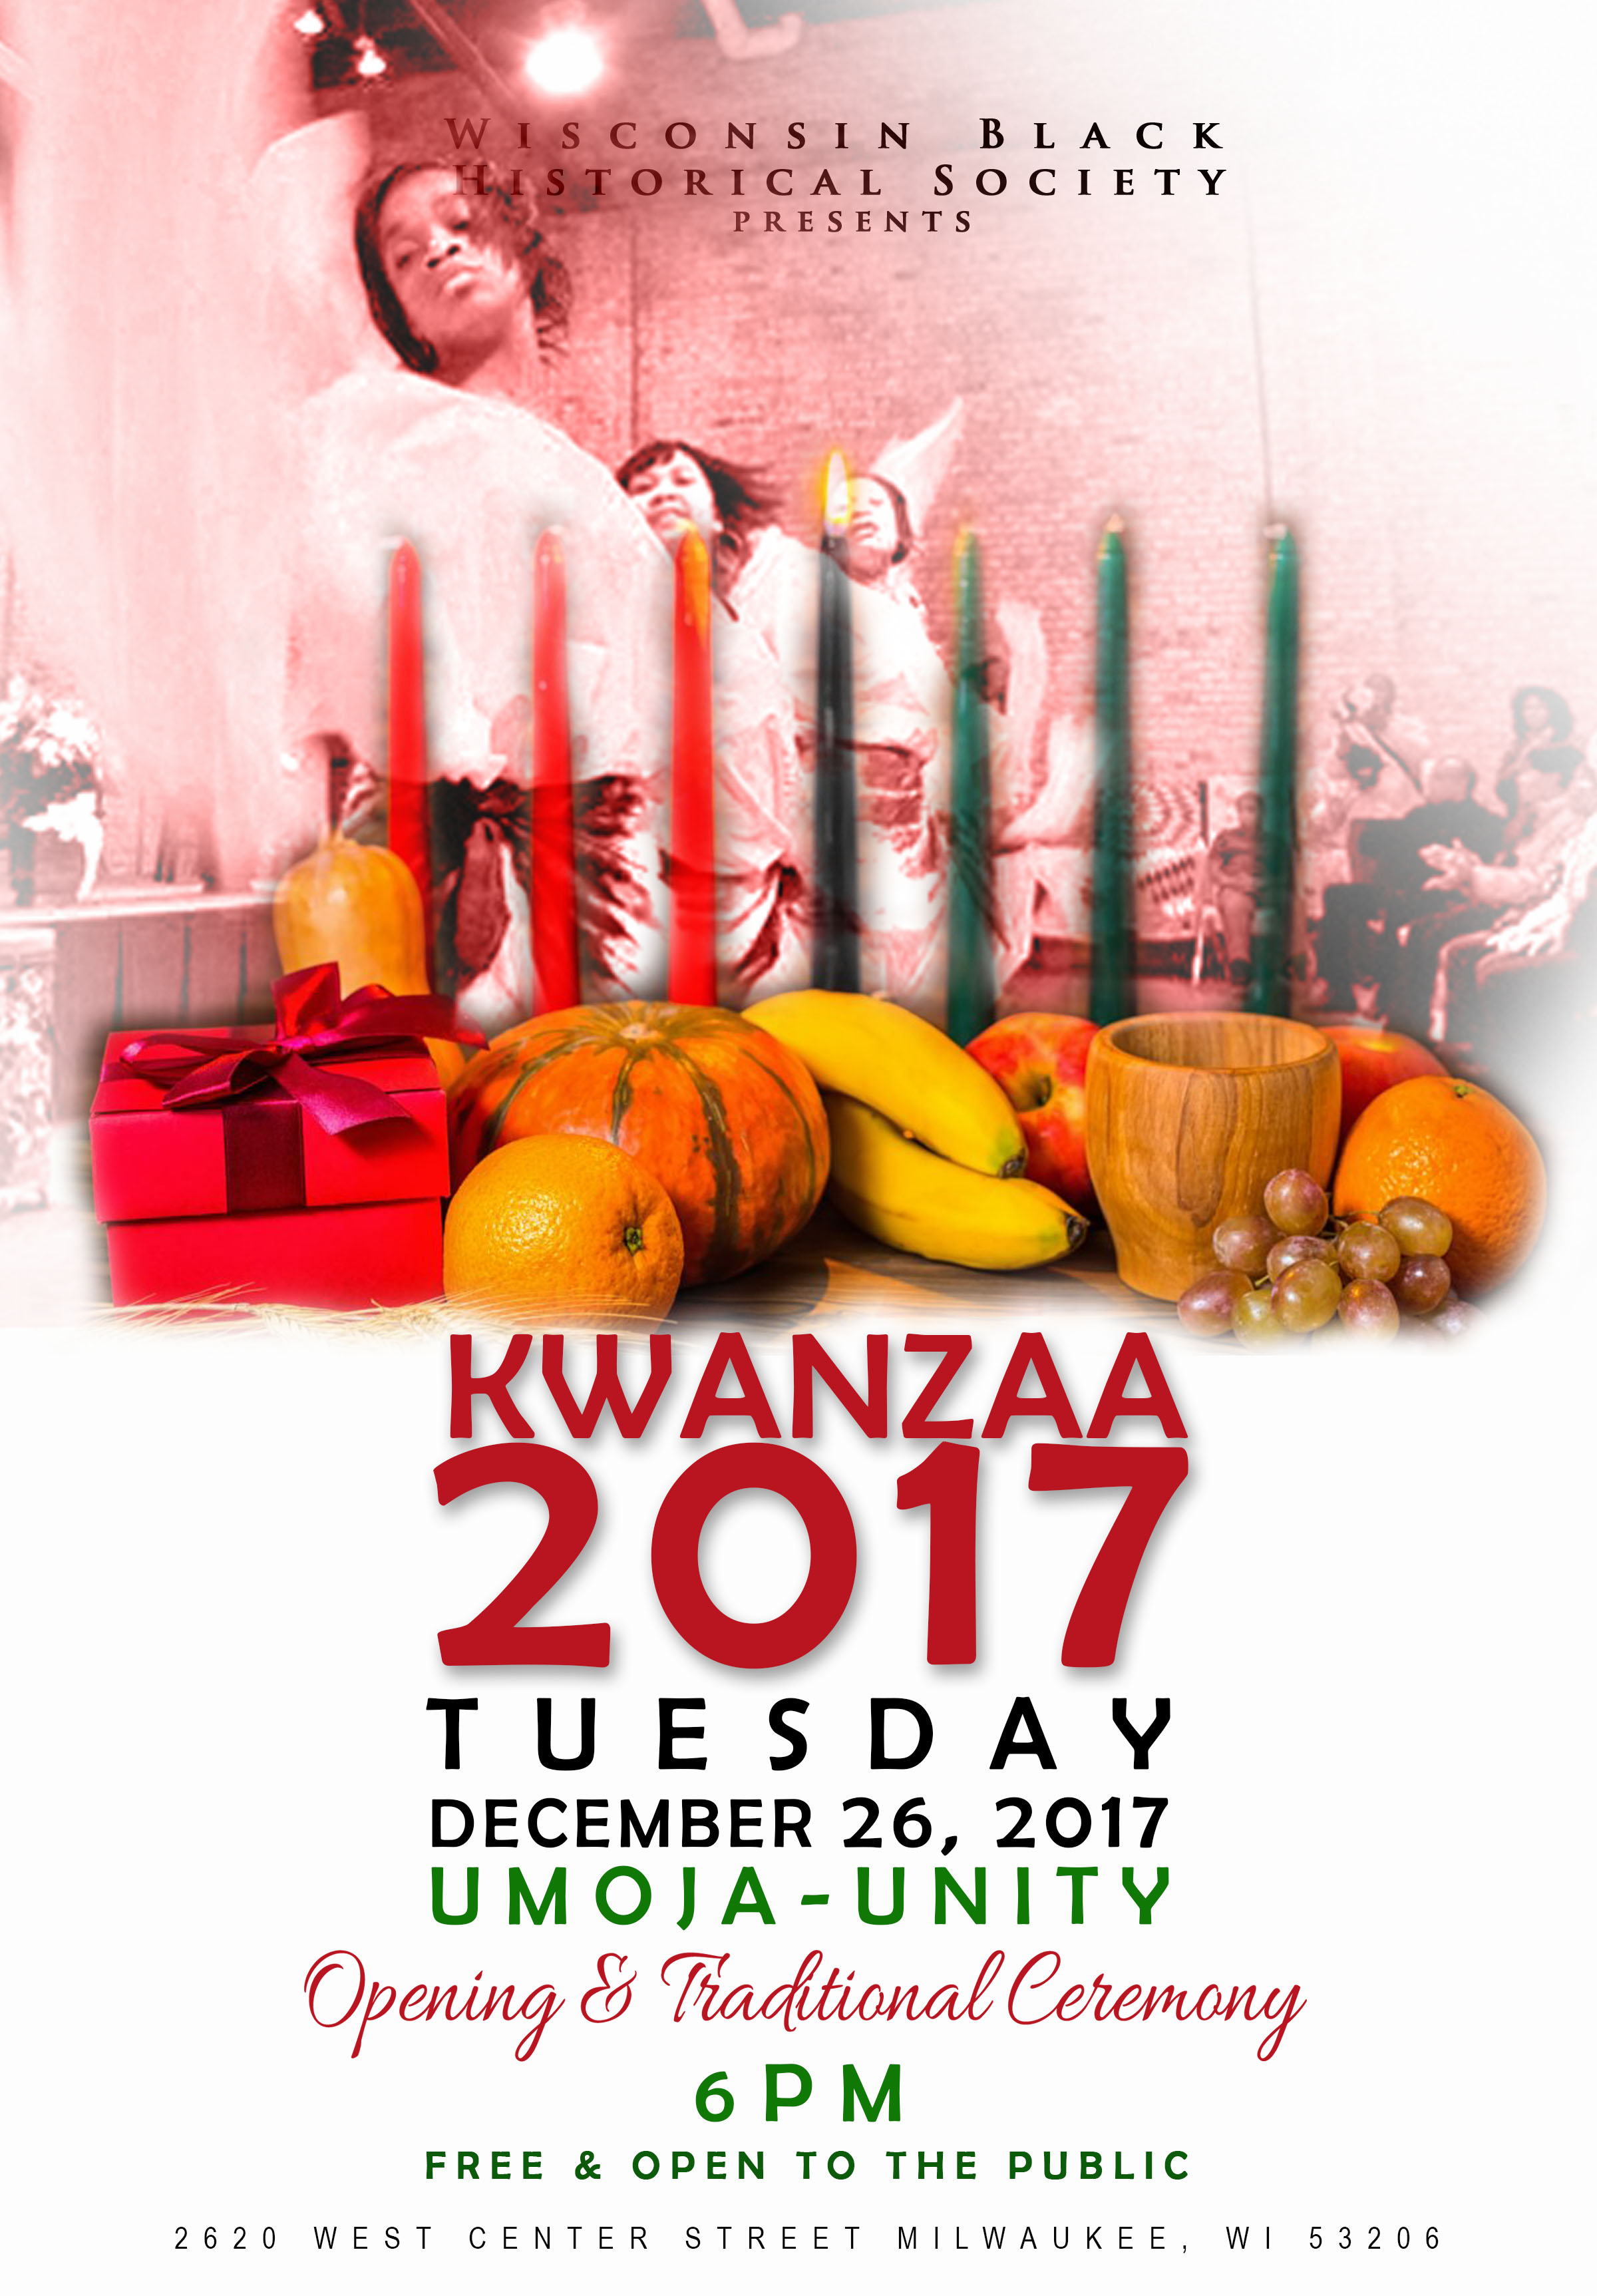 Kwanzaa 2017: OPENING CEREMONIES on map of sociology, map of home, map of thanksgiving, map of valentine's day, map of food, map of africa, map of geography, map of martin luther king, map of dongzhi festival, map of halloween, map of boxing day, map of spring, map of art, map of christmas around the world, map of three kings day, map of hanukkah, map of holi, map of mischief night, map of easter, map of holiday,